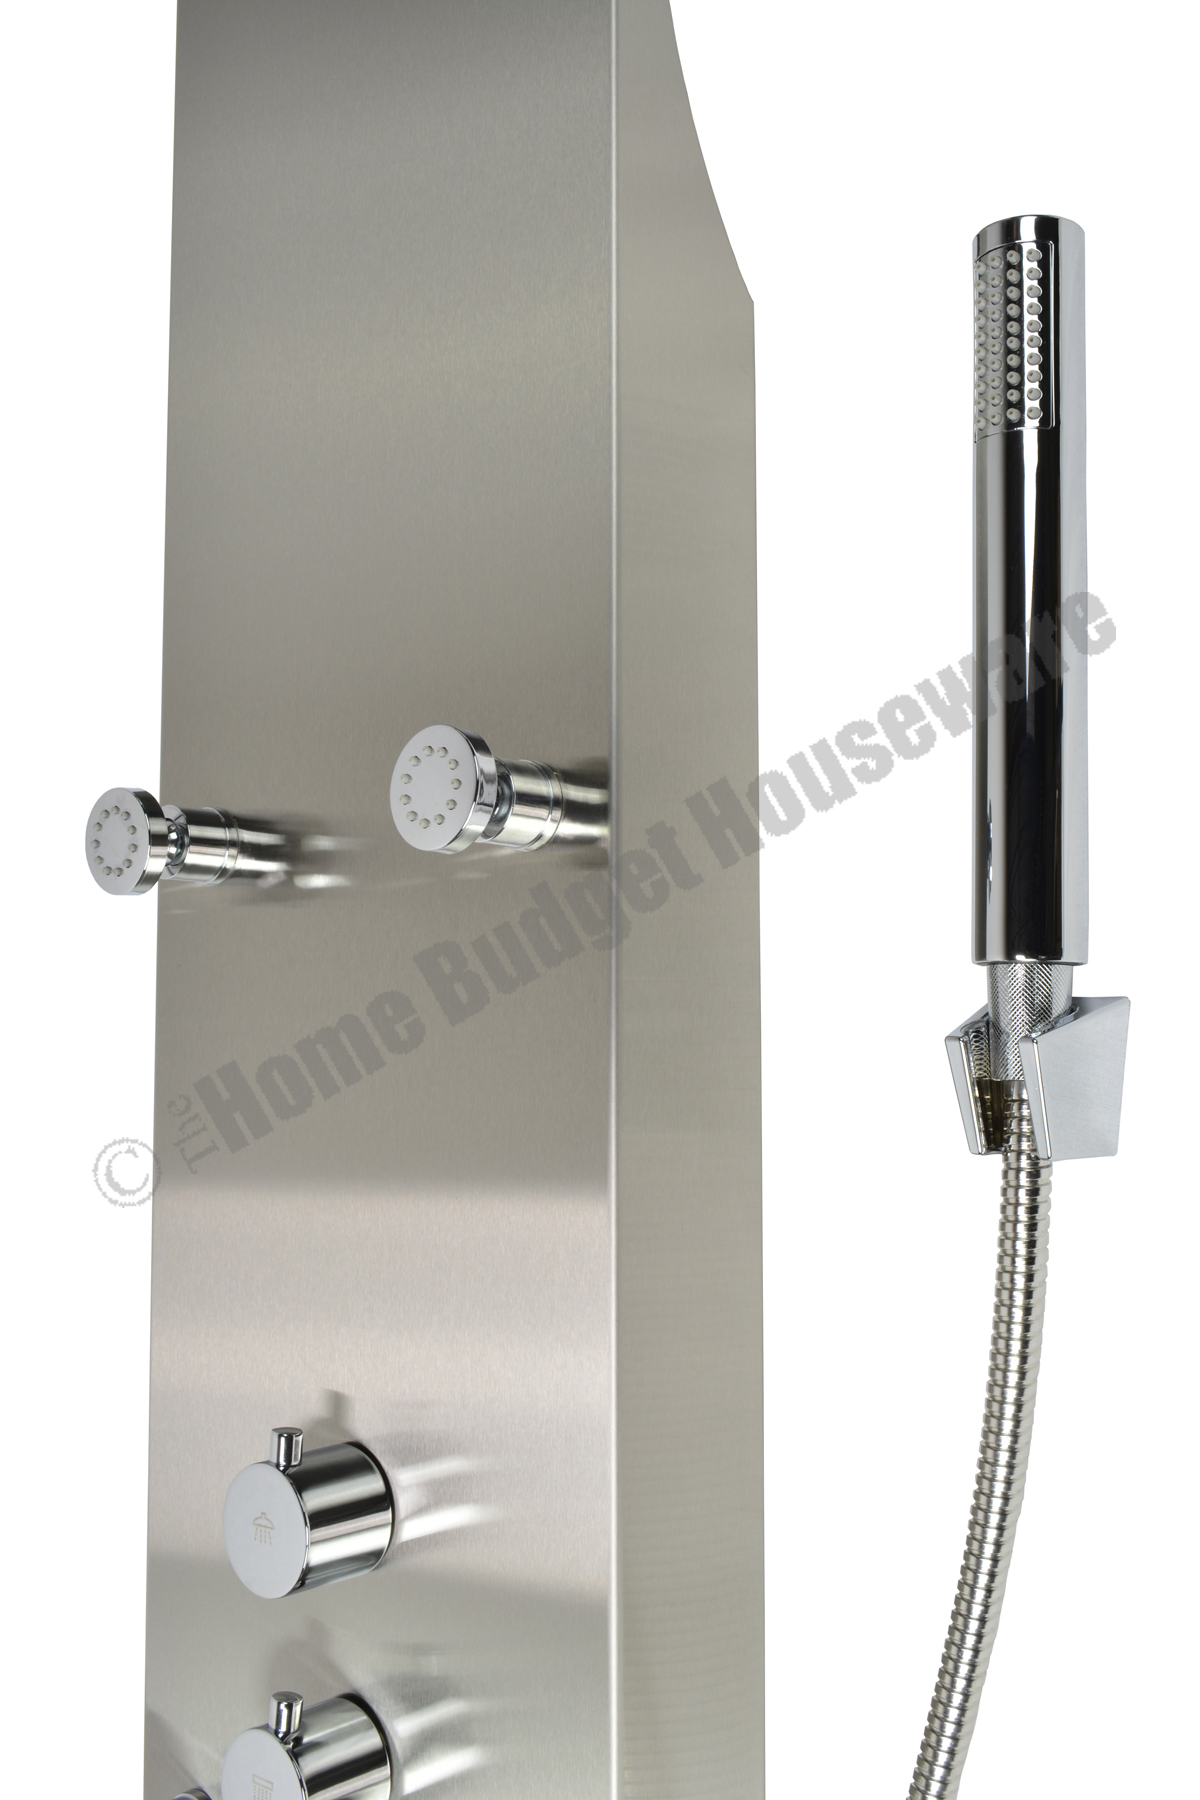 wide pressure inch shower chrome flow w finish rainluxe drenching jets high rainshower rainfall overhead head waterfall products